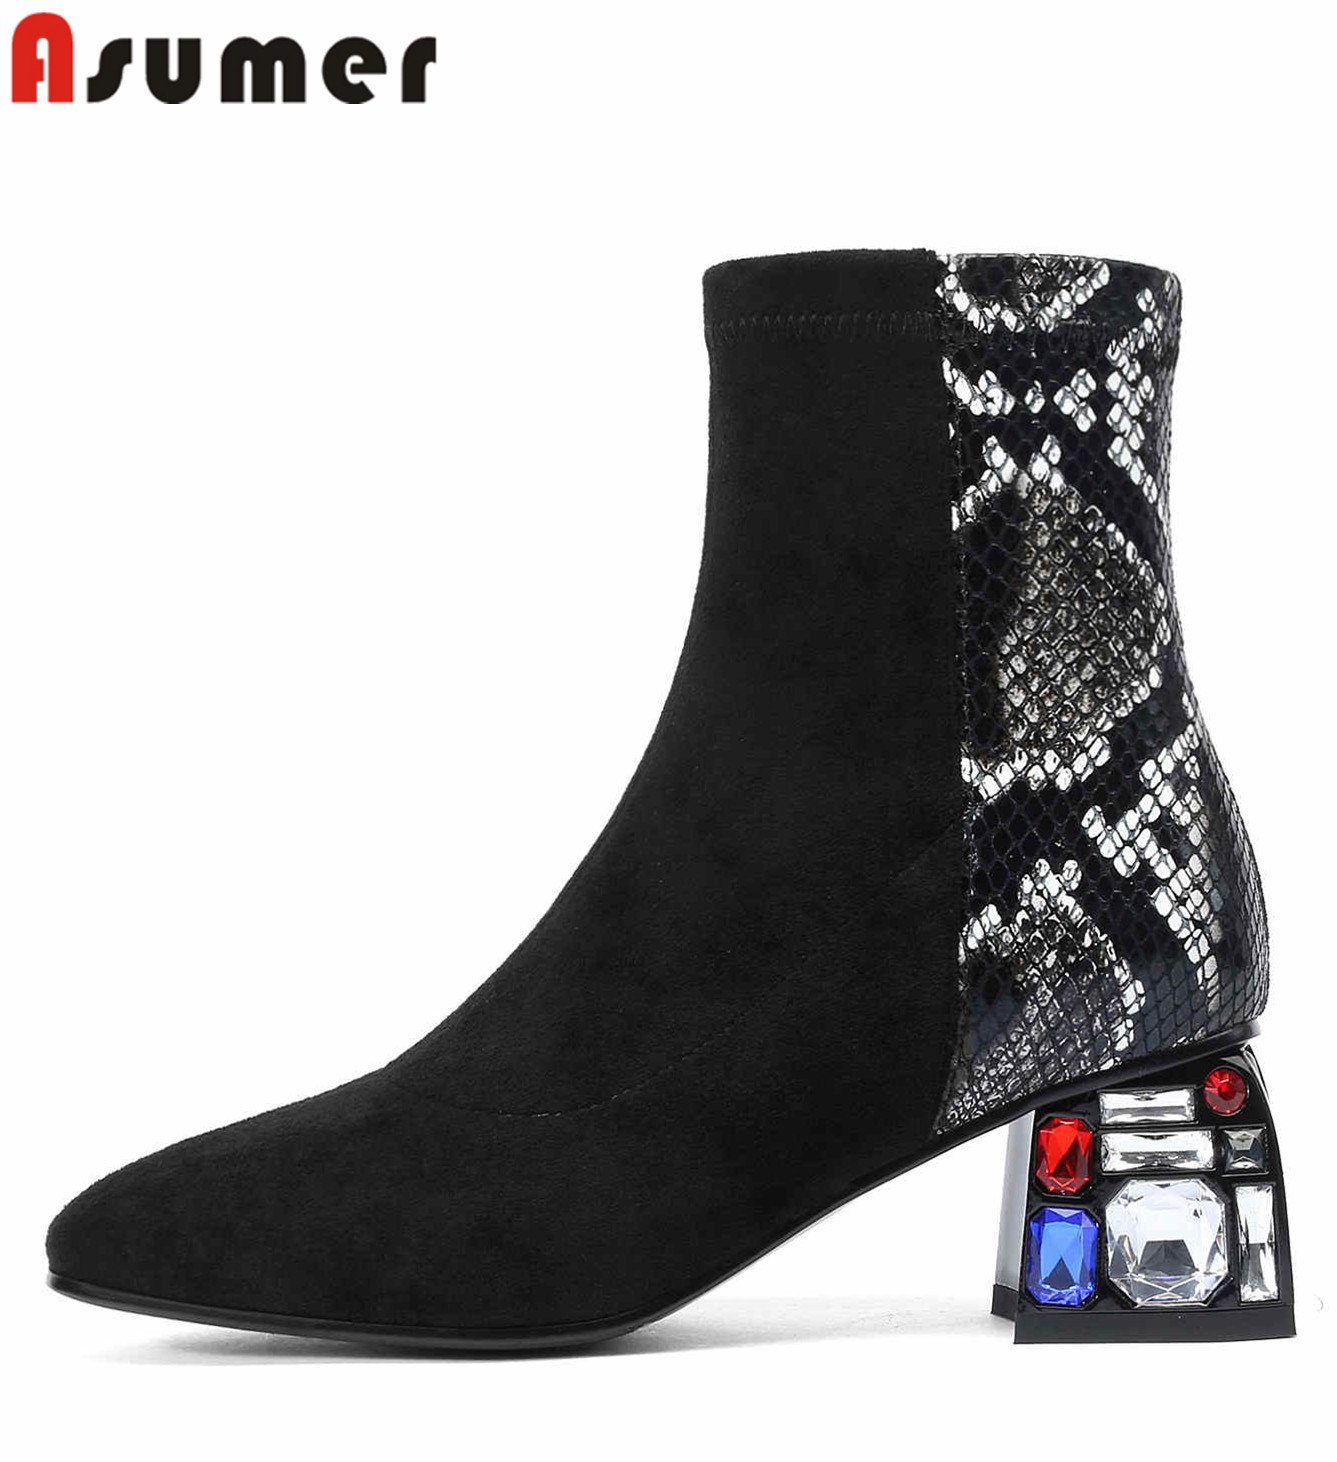 ASUMER 2020 New arrival women boots rhinestone high heels autumn shoes patchwork fashion ladies ankle boots